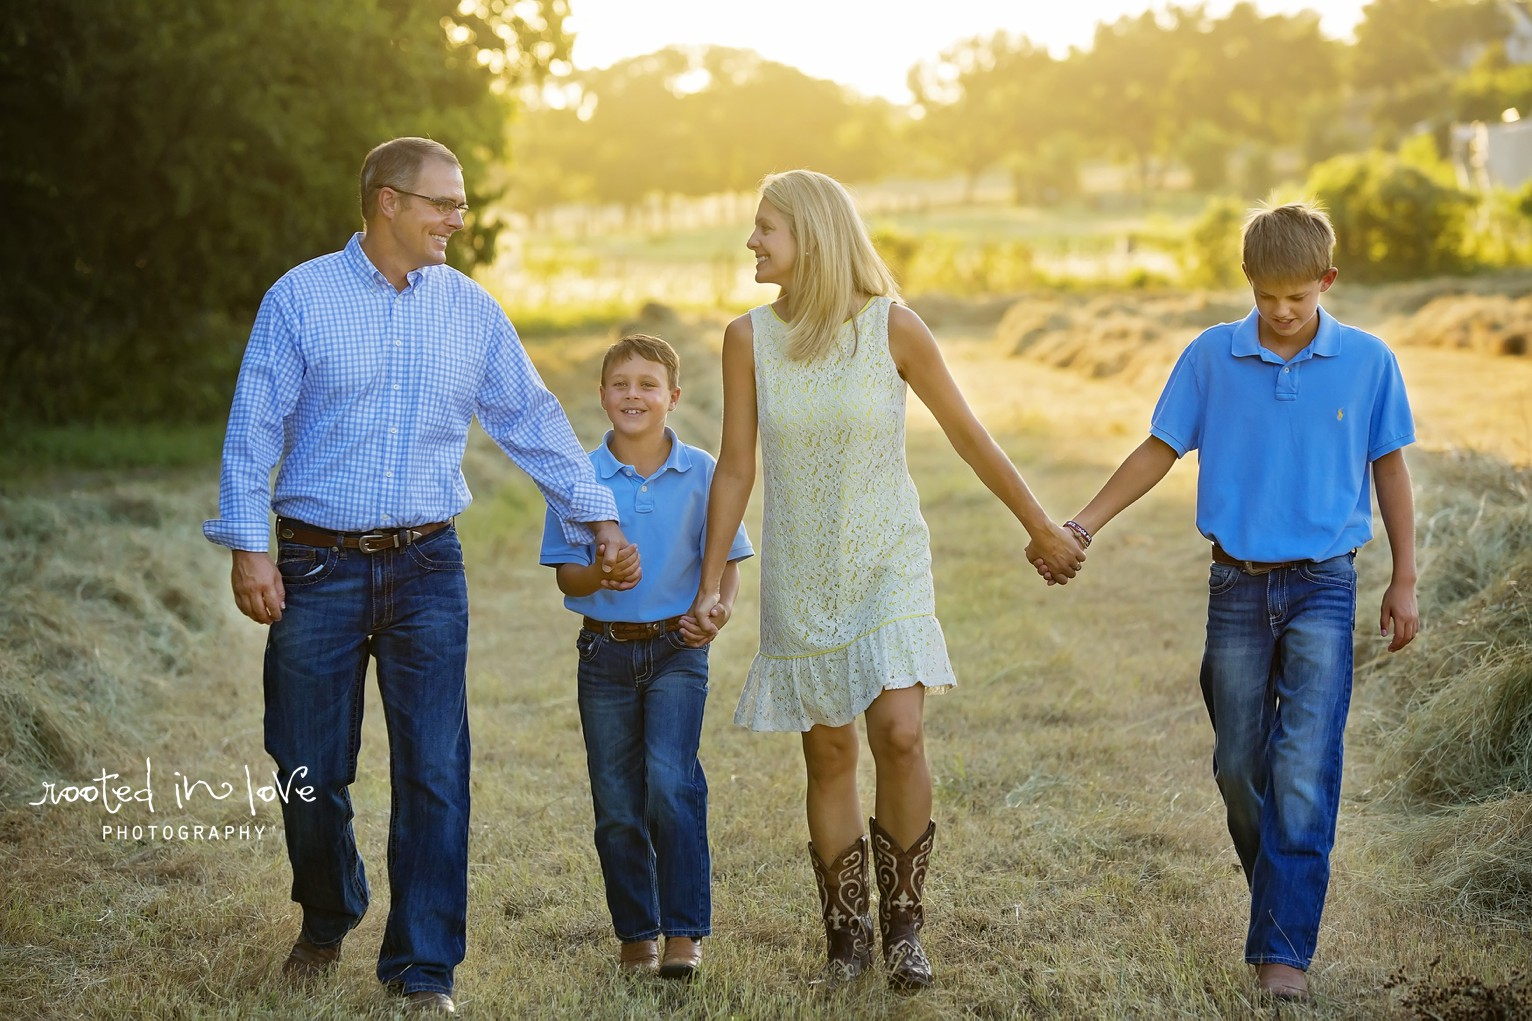 Snead family session | Aledo family photographer